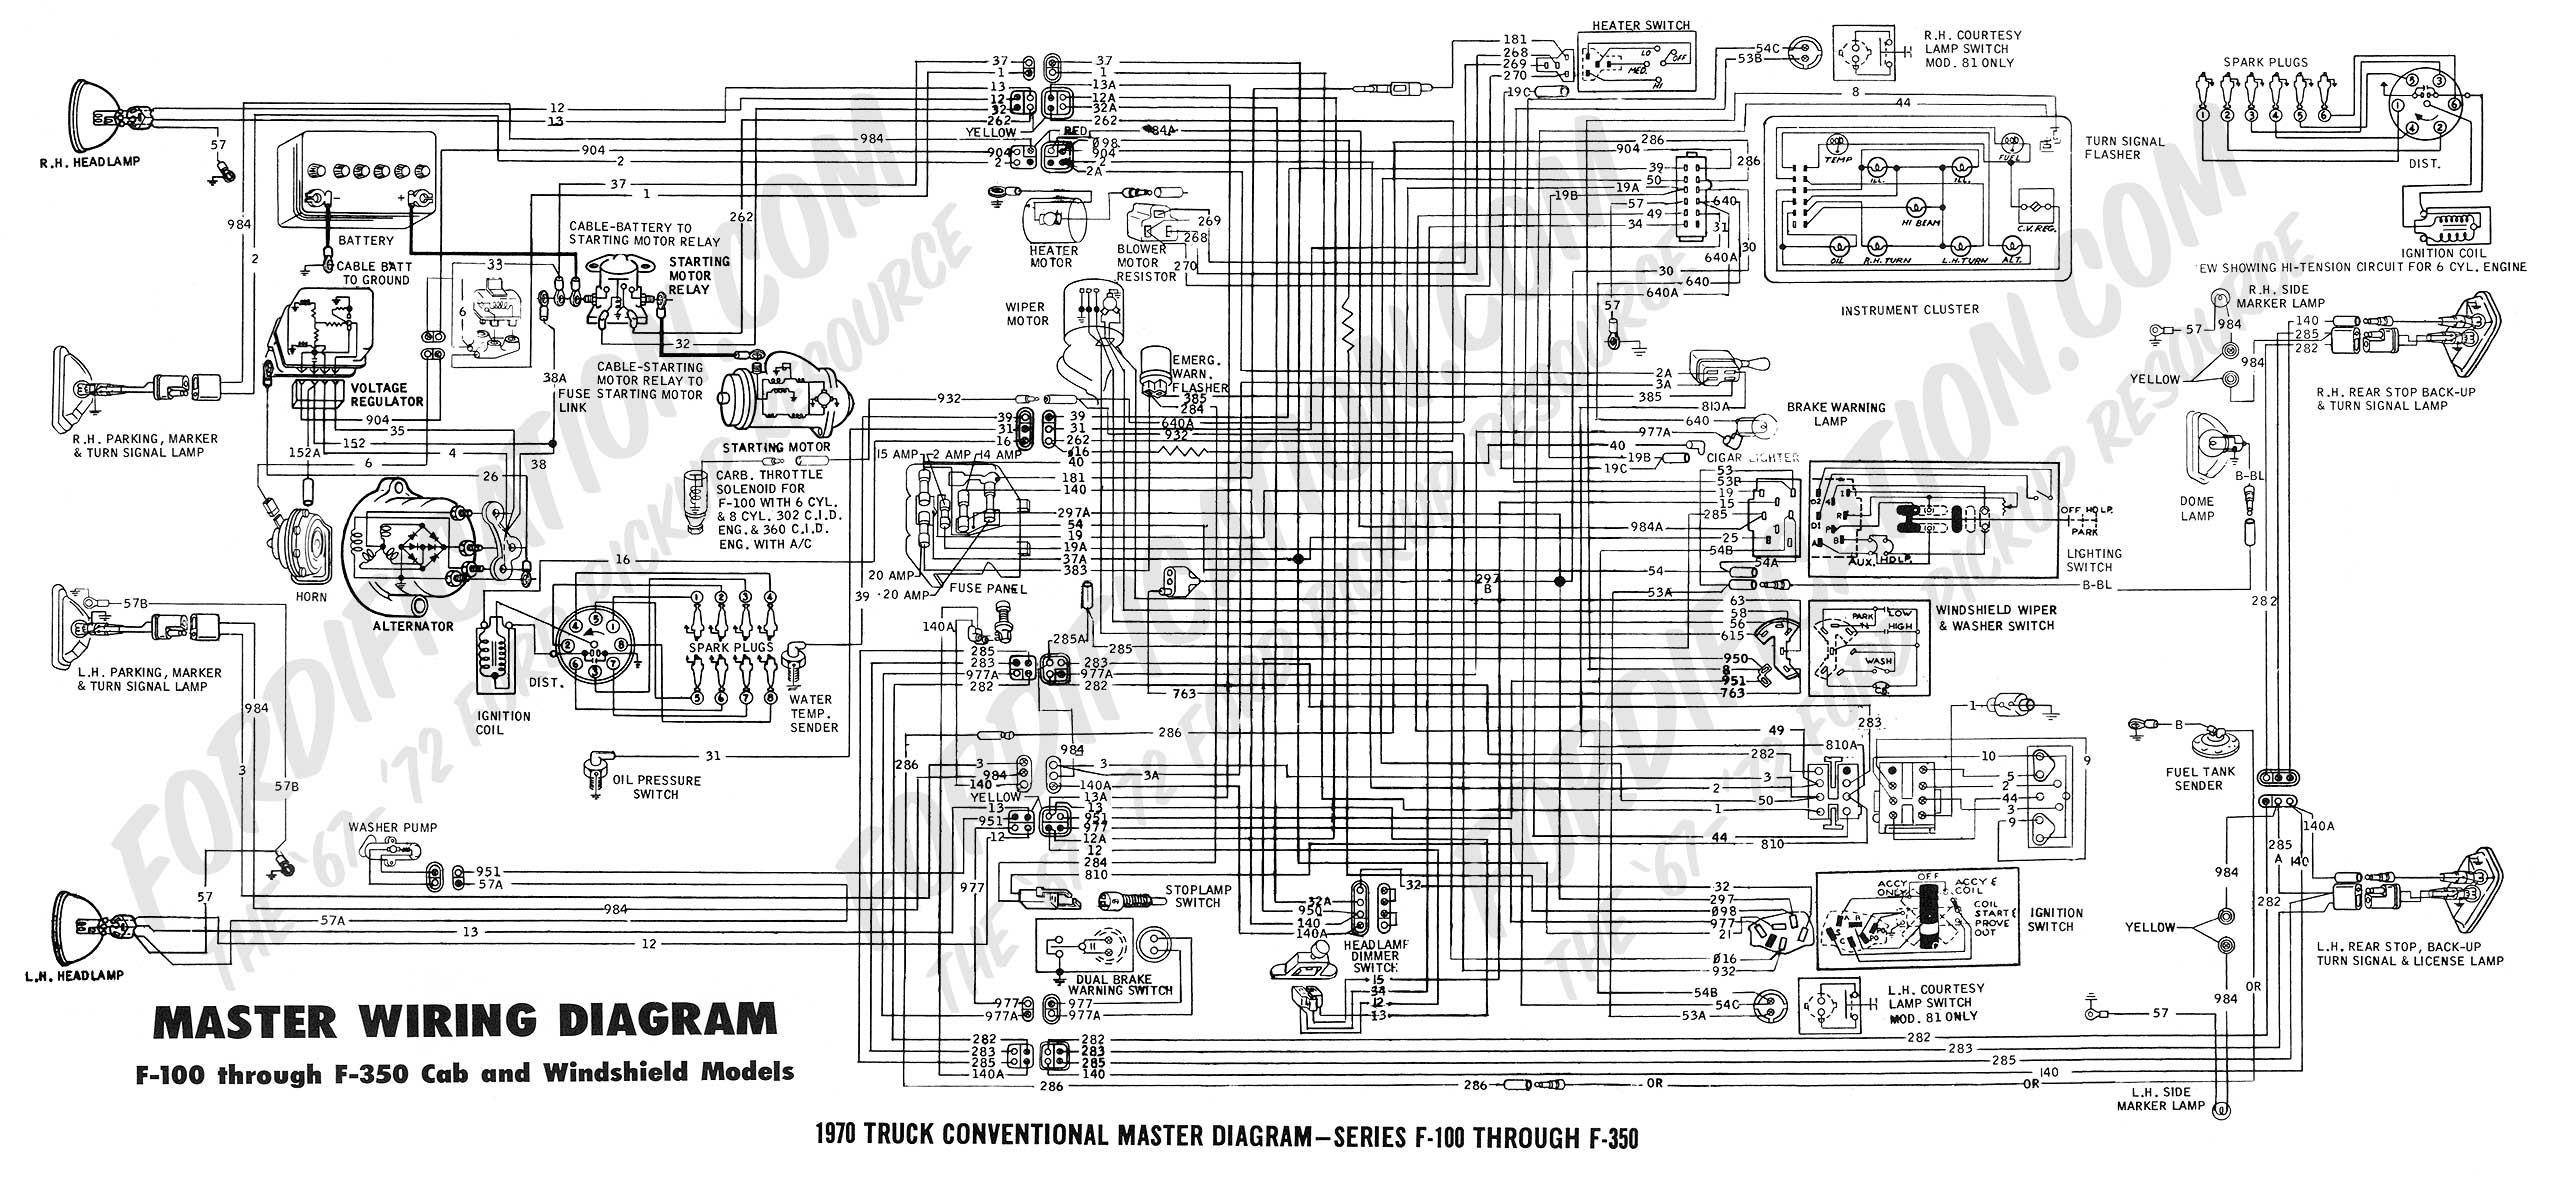 wiring diagram 70_master 1990 ford f250 wiring diagram manual guide wiring diagram \u2022